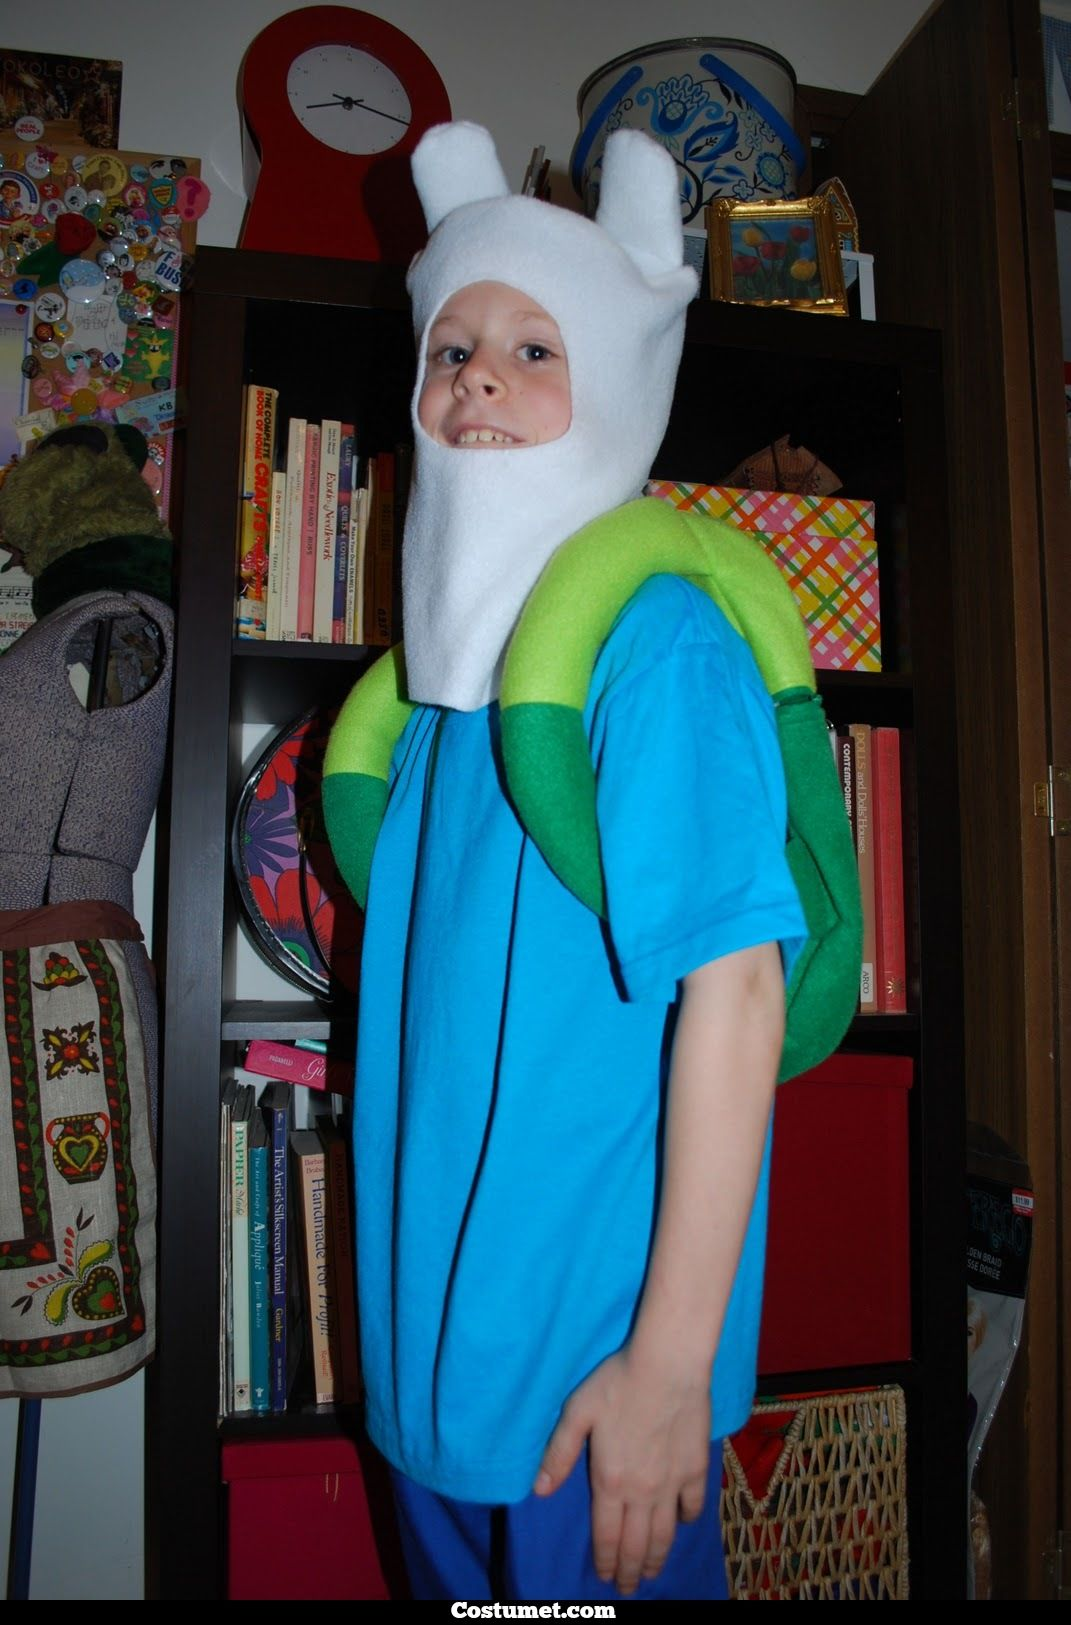 dress like adventure time's finn the human costume for cosplay